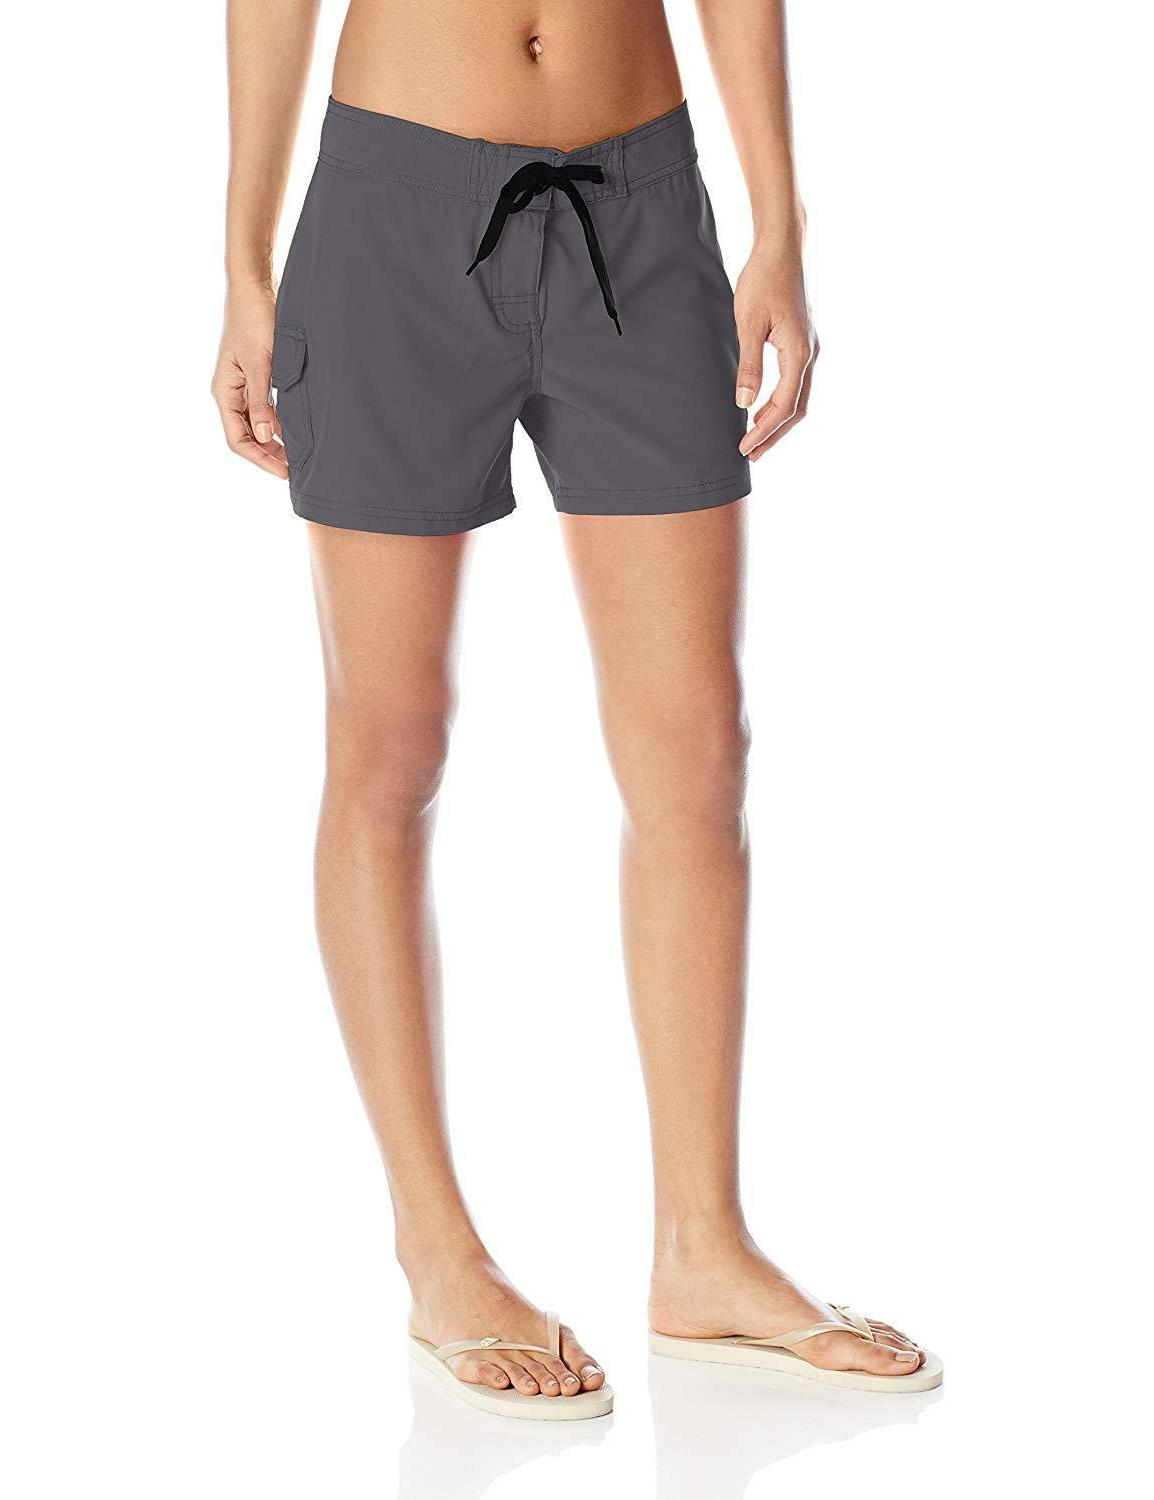 New Women's Board Shorts or Grey - Size